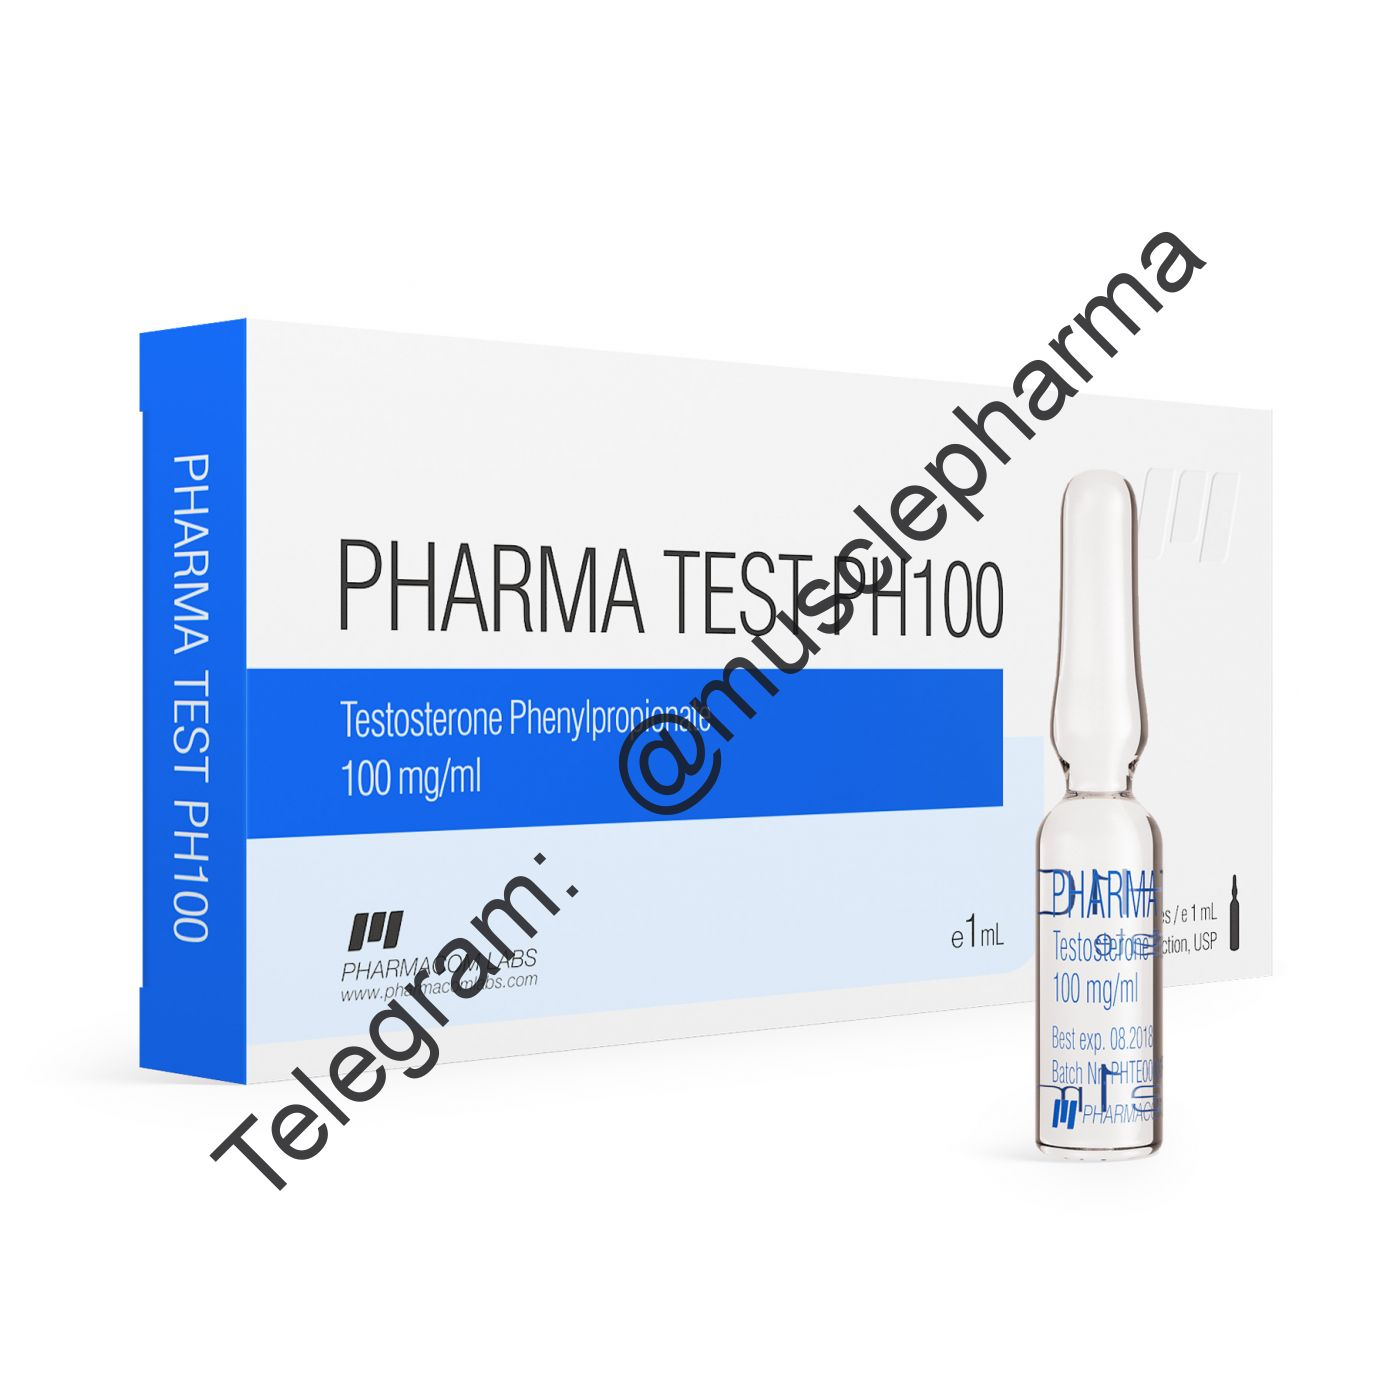 PHARMATEST PH100 (PHARMACOM LABS). 100mg/ml. 1 ml * 10 ампул